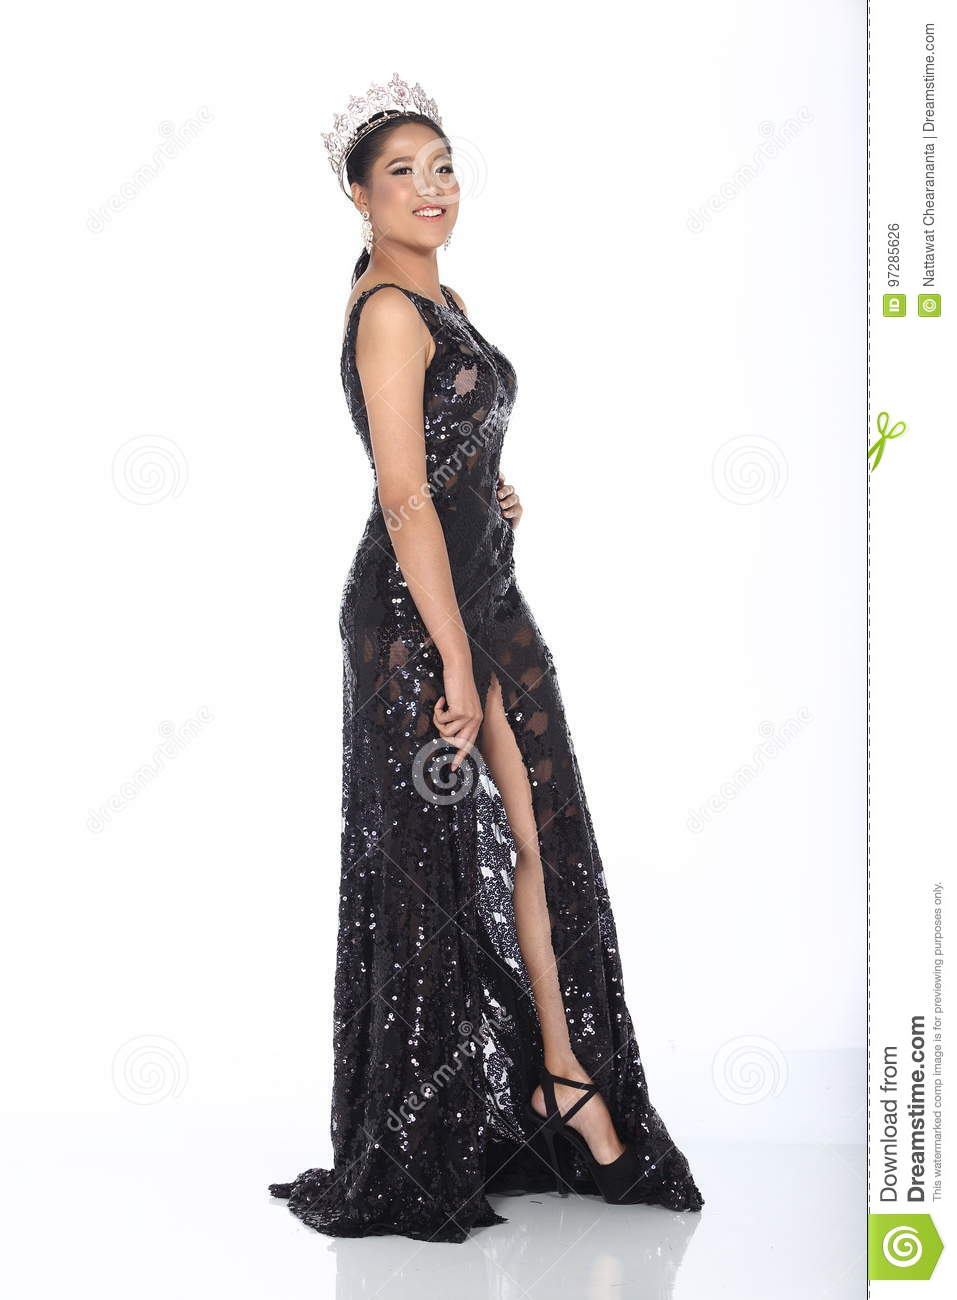 bc9d75ccde7 Black And White Evening Gown Pictures